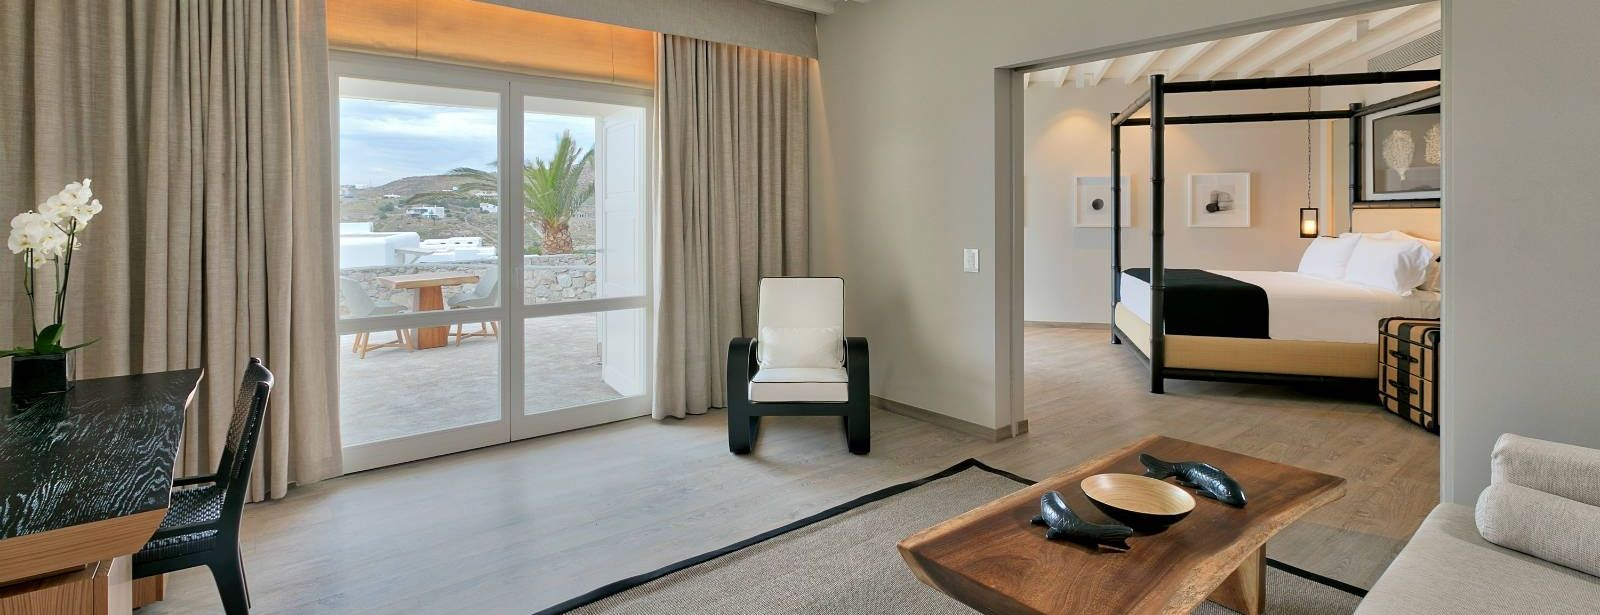 Deluxe Seaview Suite living room and bedroom at Santa Marina Resort Mykonos Luxury Hotel